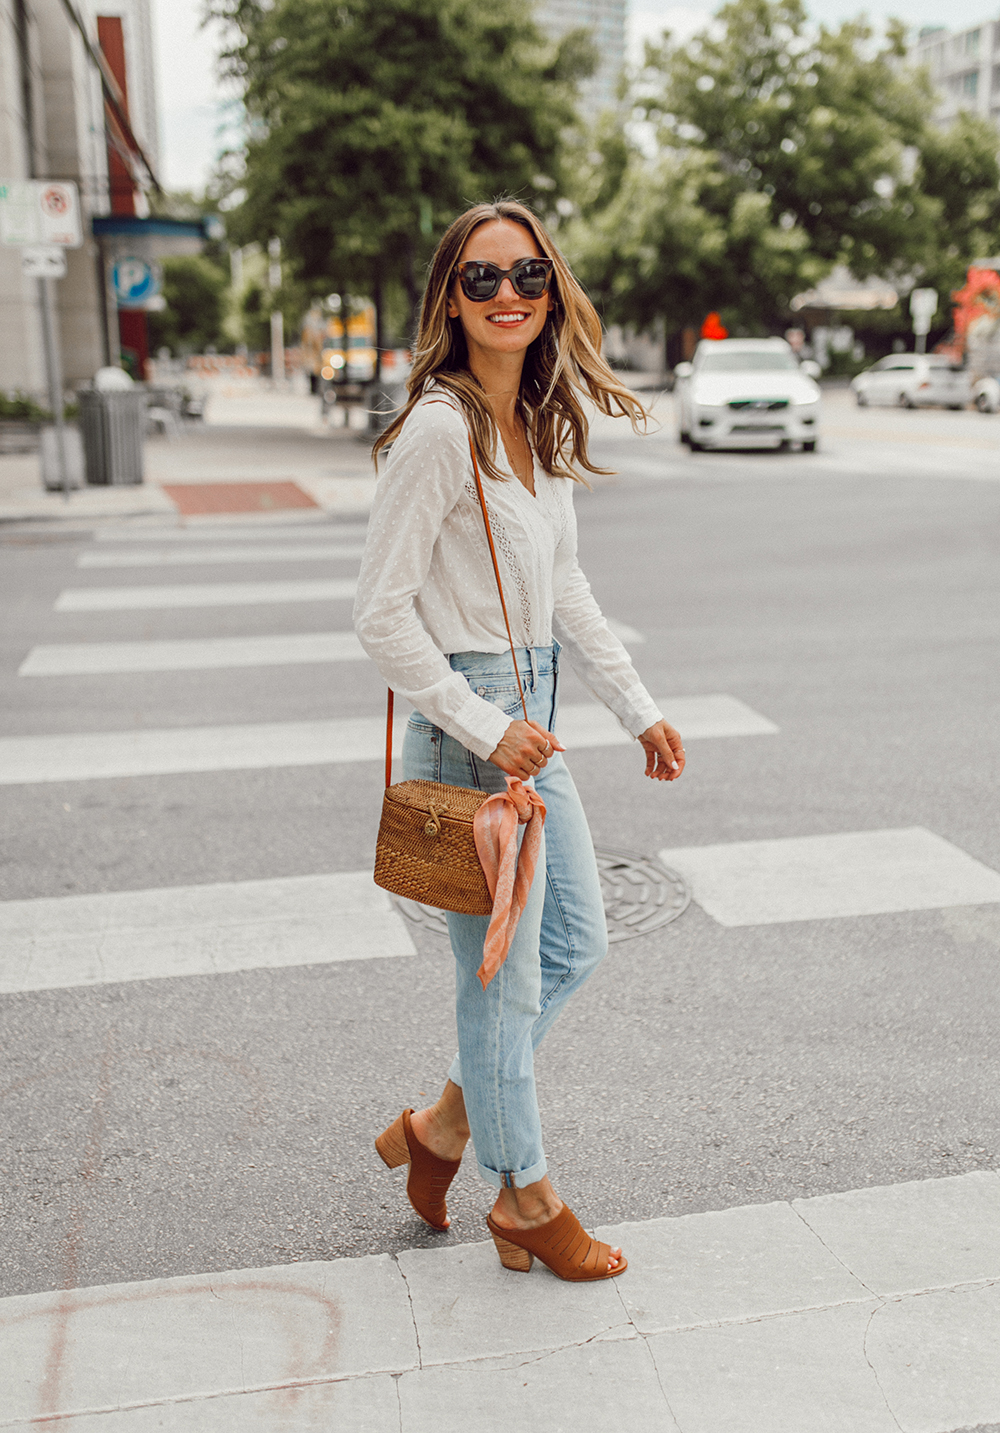 livvland-blog-olivia-watson-austin-texas-fashion-lifestyle-blogger-sezane-lace-deep-v-top-rattan-bag-madewell-summer-jeans-8